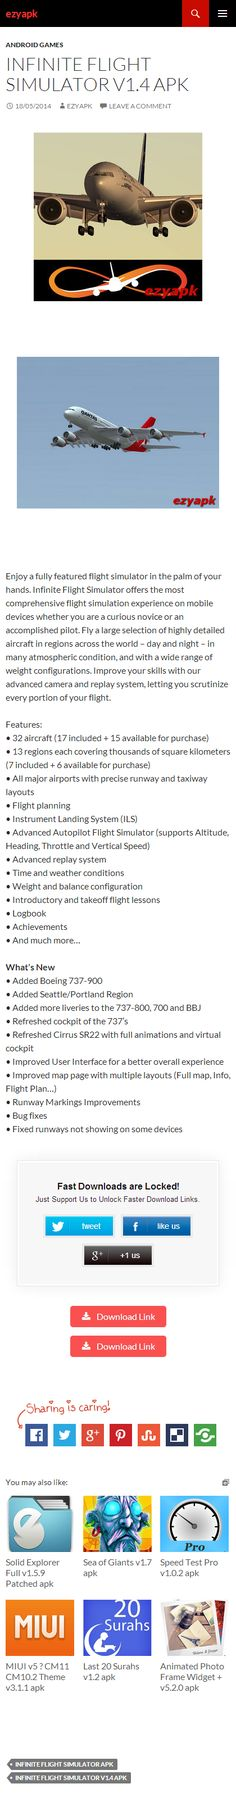 Android Games Infinite Flight Simulator v1.4 apk - ezyapk Infinite Flight Simulator offers the most comprehensive flight simulation experience on mobile, whether you are a curious novice or an accomplished pilot. http://www.ezyapk.com/android-games/infinite-flight-simulator-v1-4-apk/